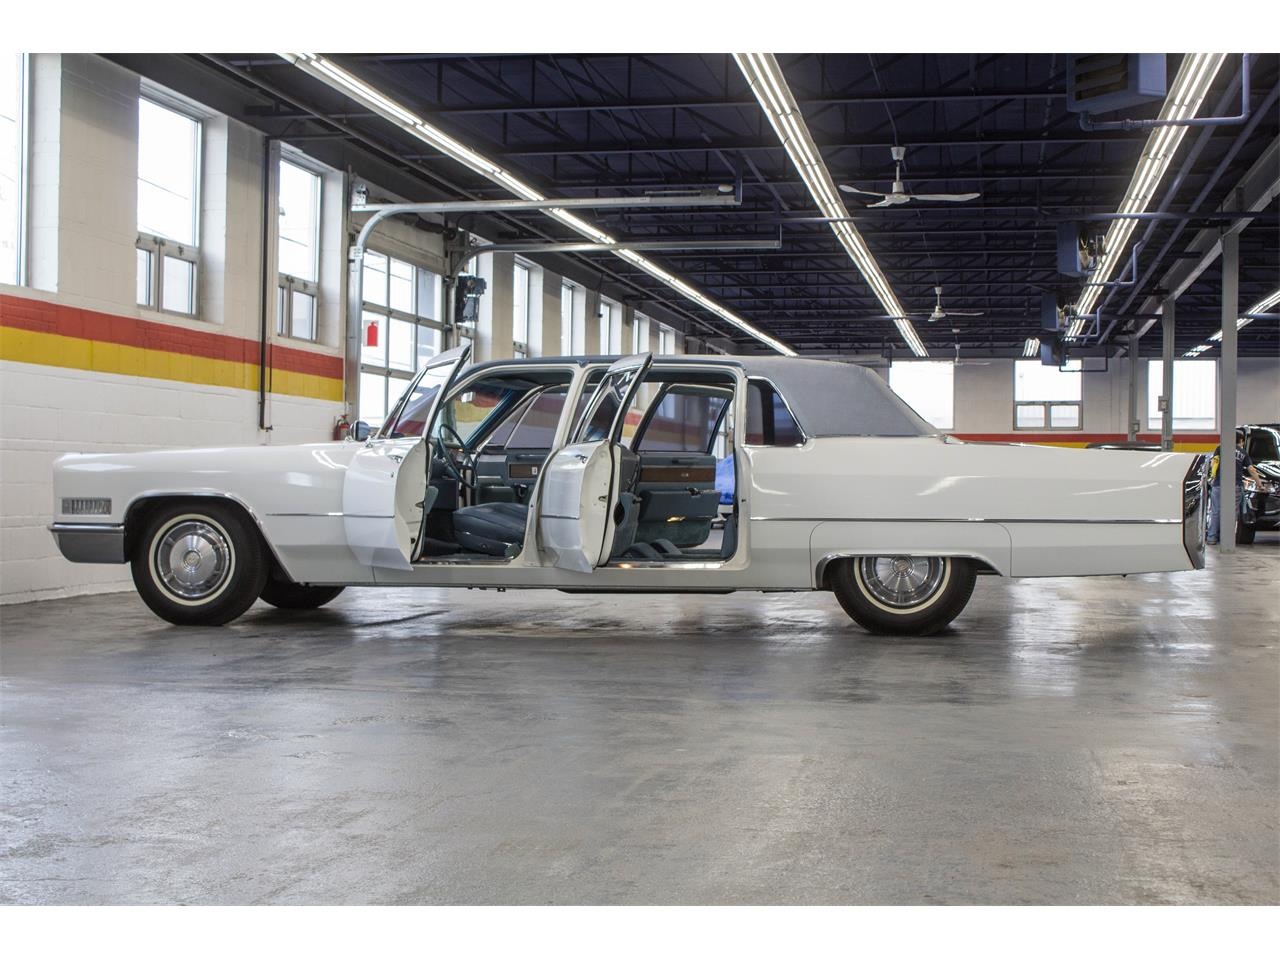 Large Picture of Classic '66 Cadillac Fleetwood Limousine Offered by John Scotti Classic Cars - NKXQ